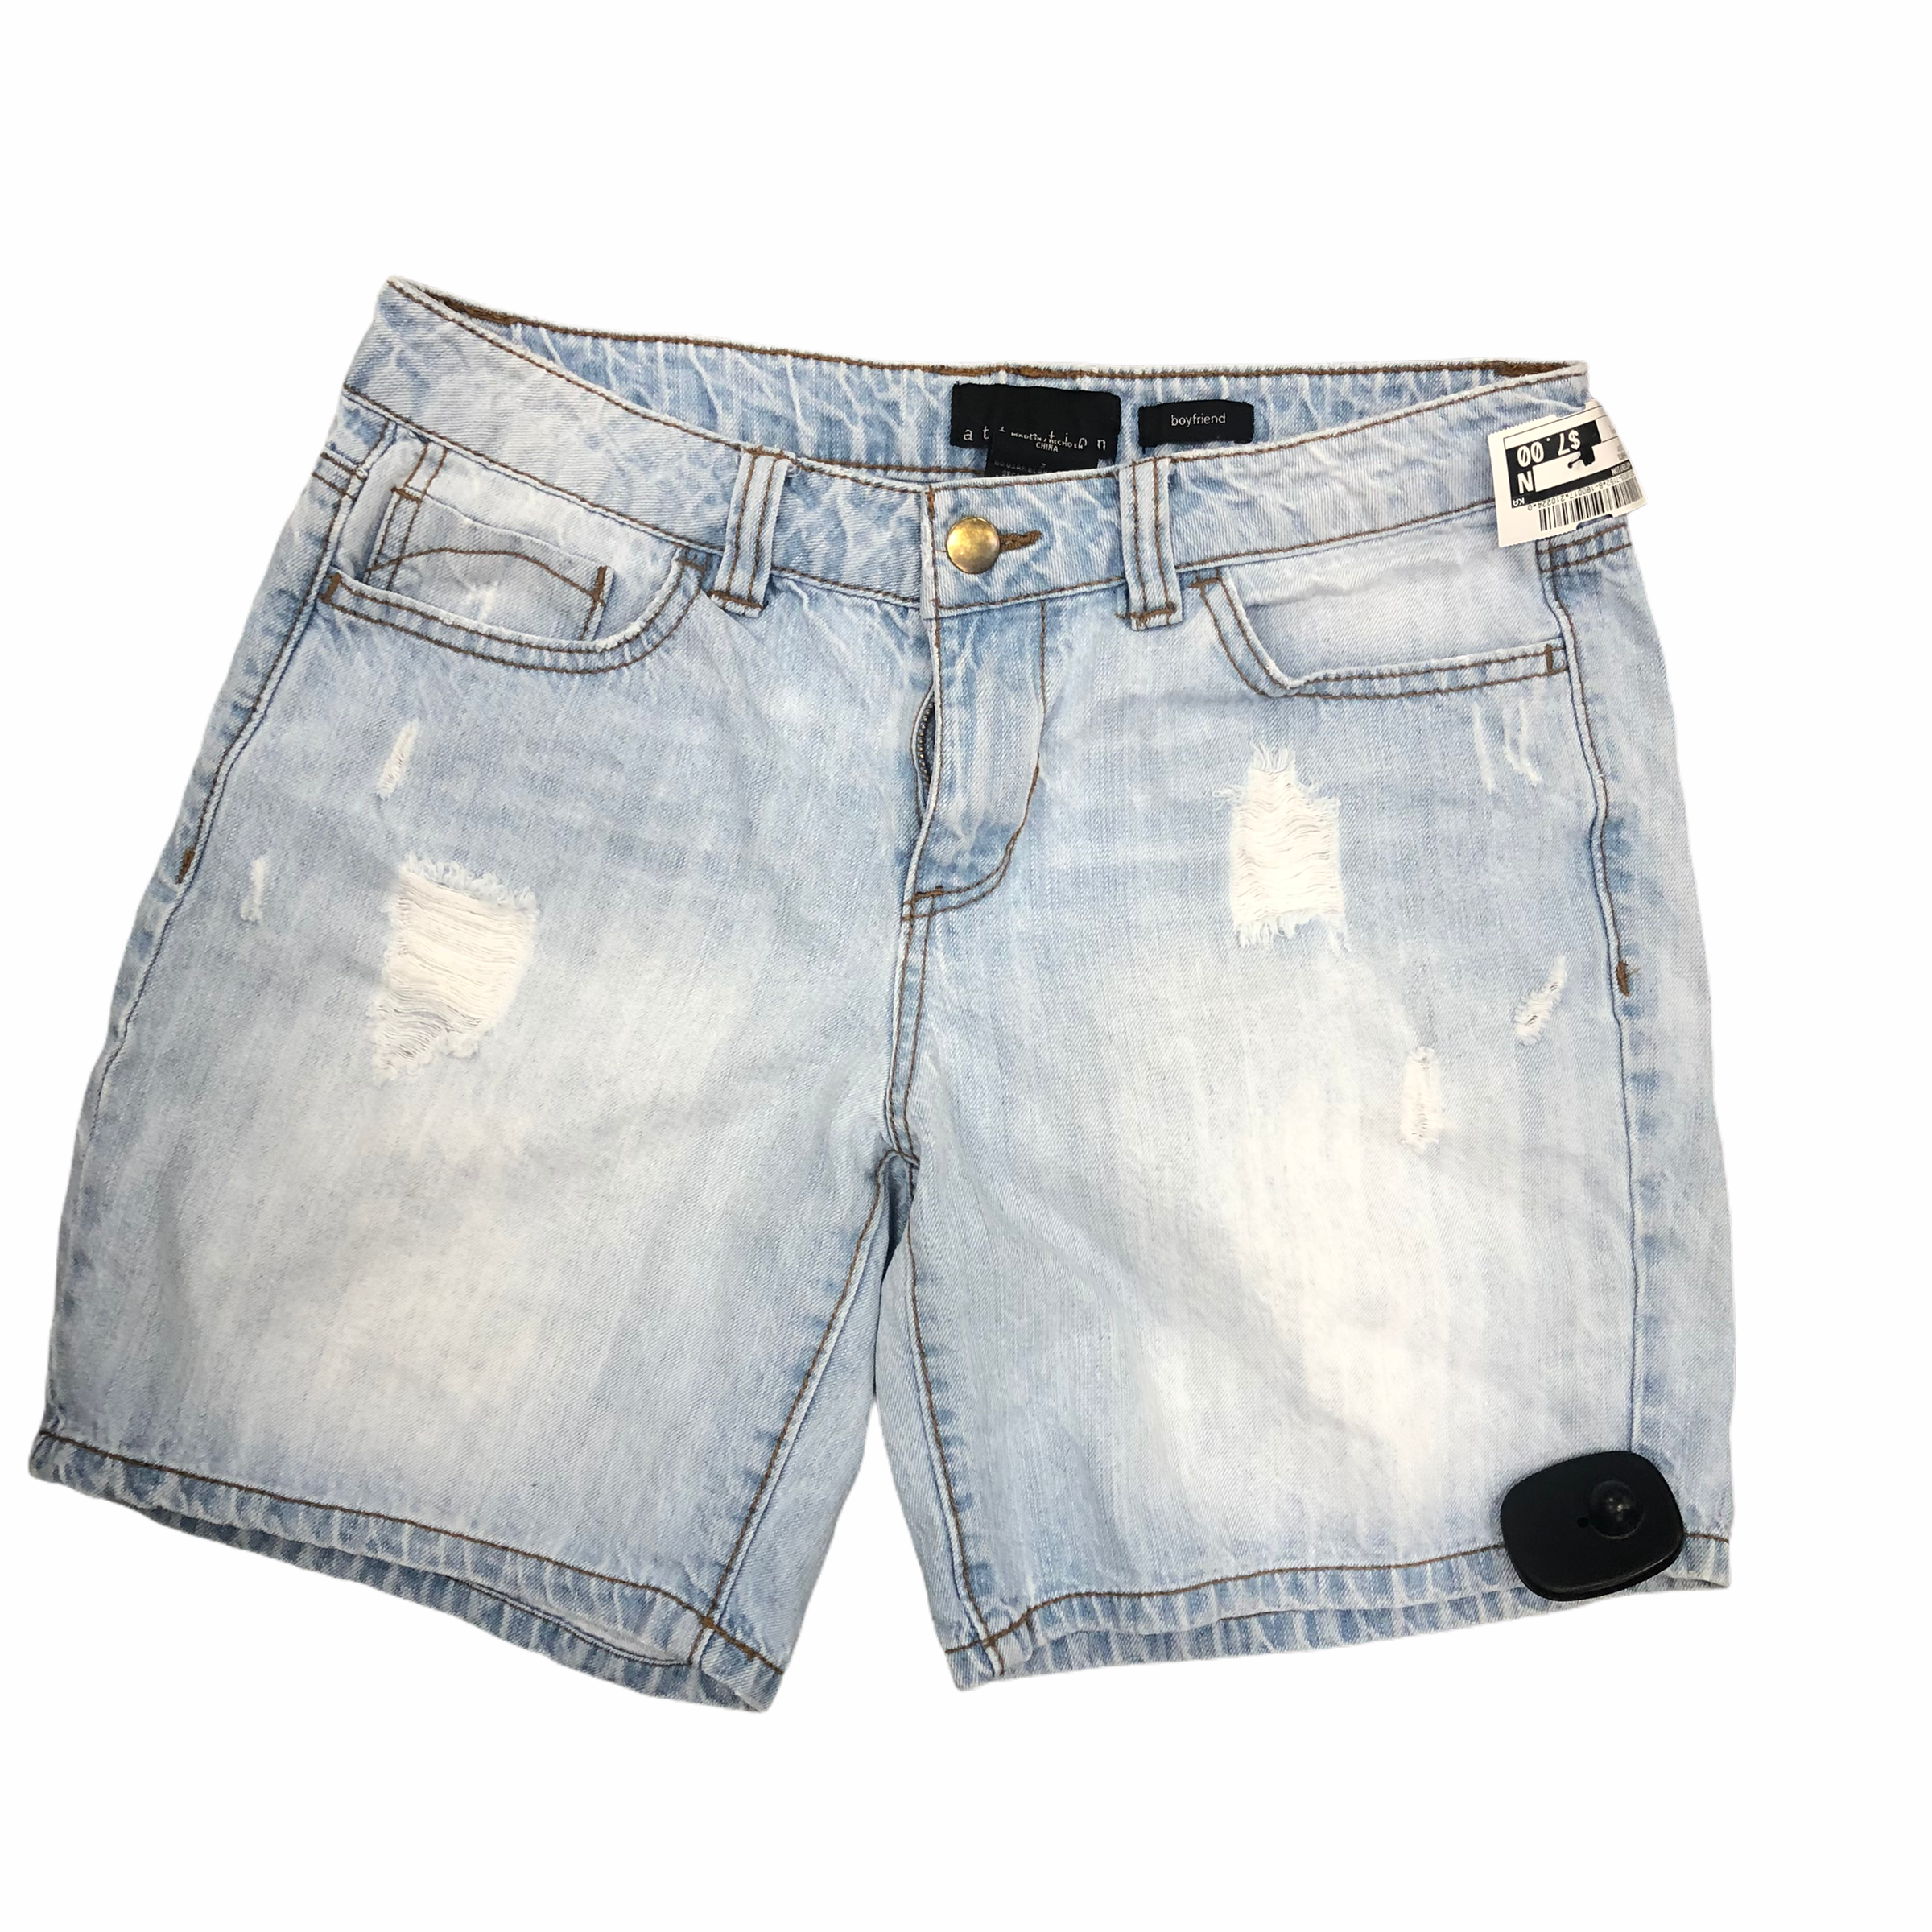 Primary Photo - brand: attention , style: shorts , color: denim , size: l, sku: 267-26793-7152